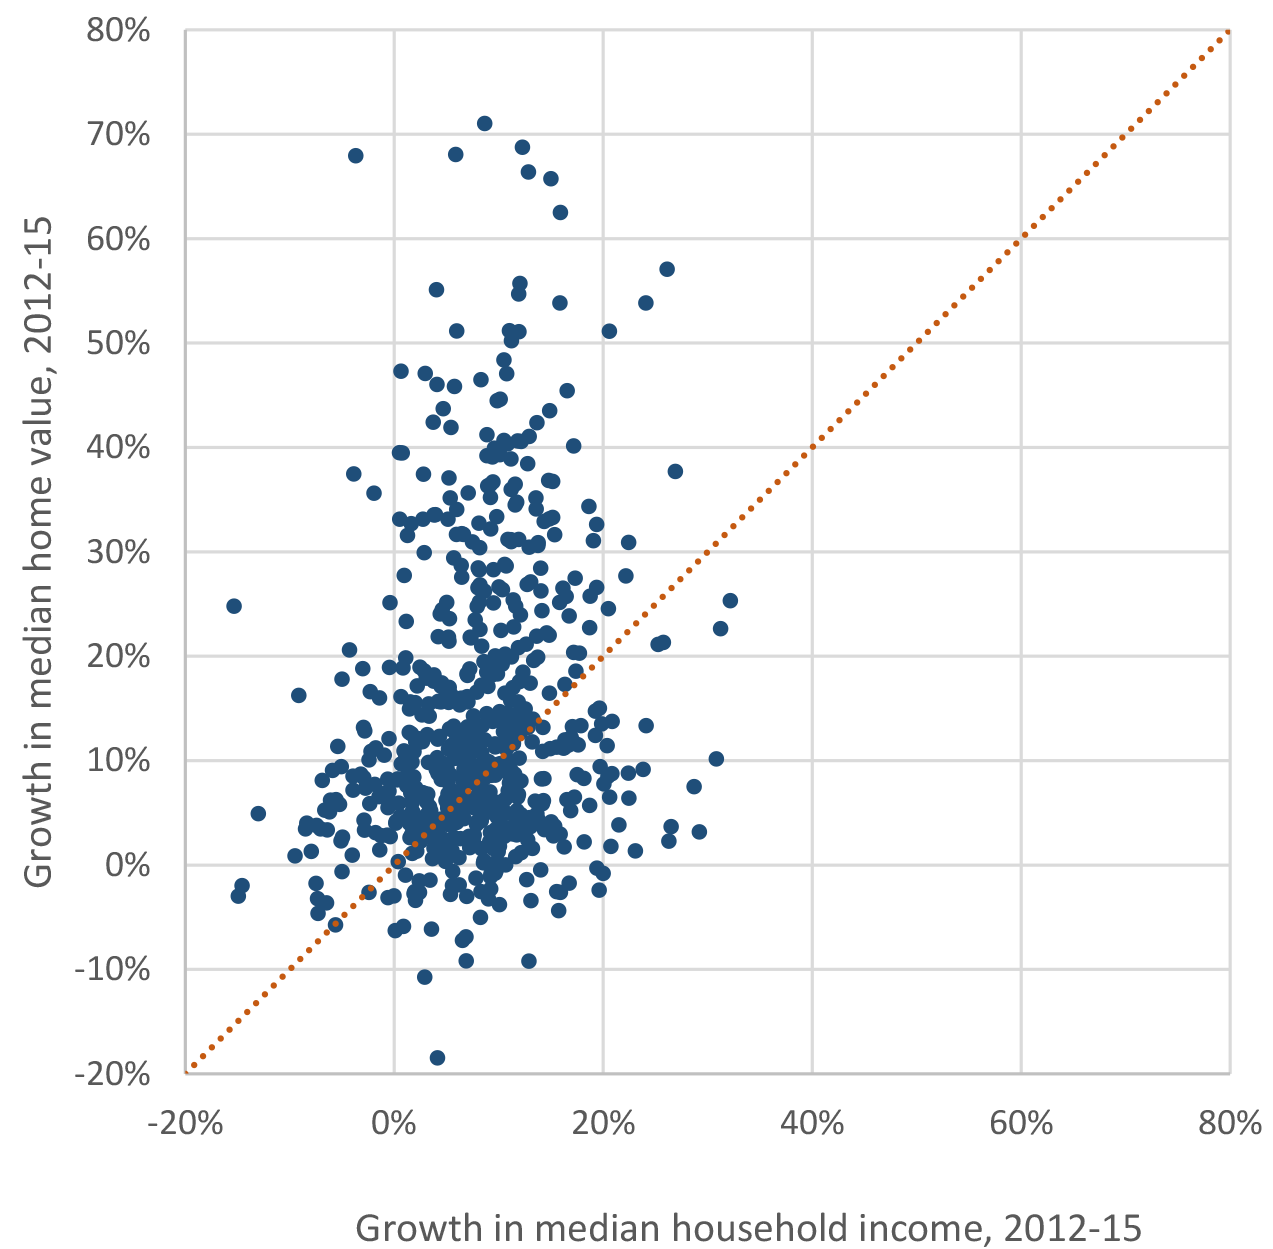 Figure 1: County house price growth vs. county income growth, 2012-2015. See accessible link for data.